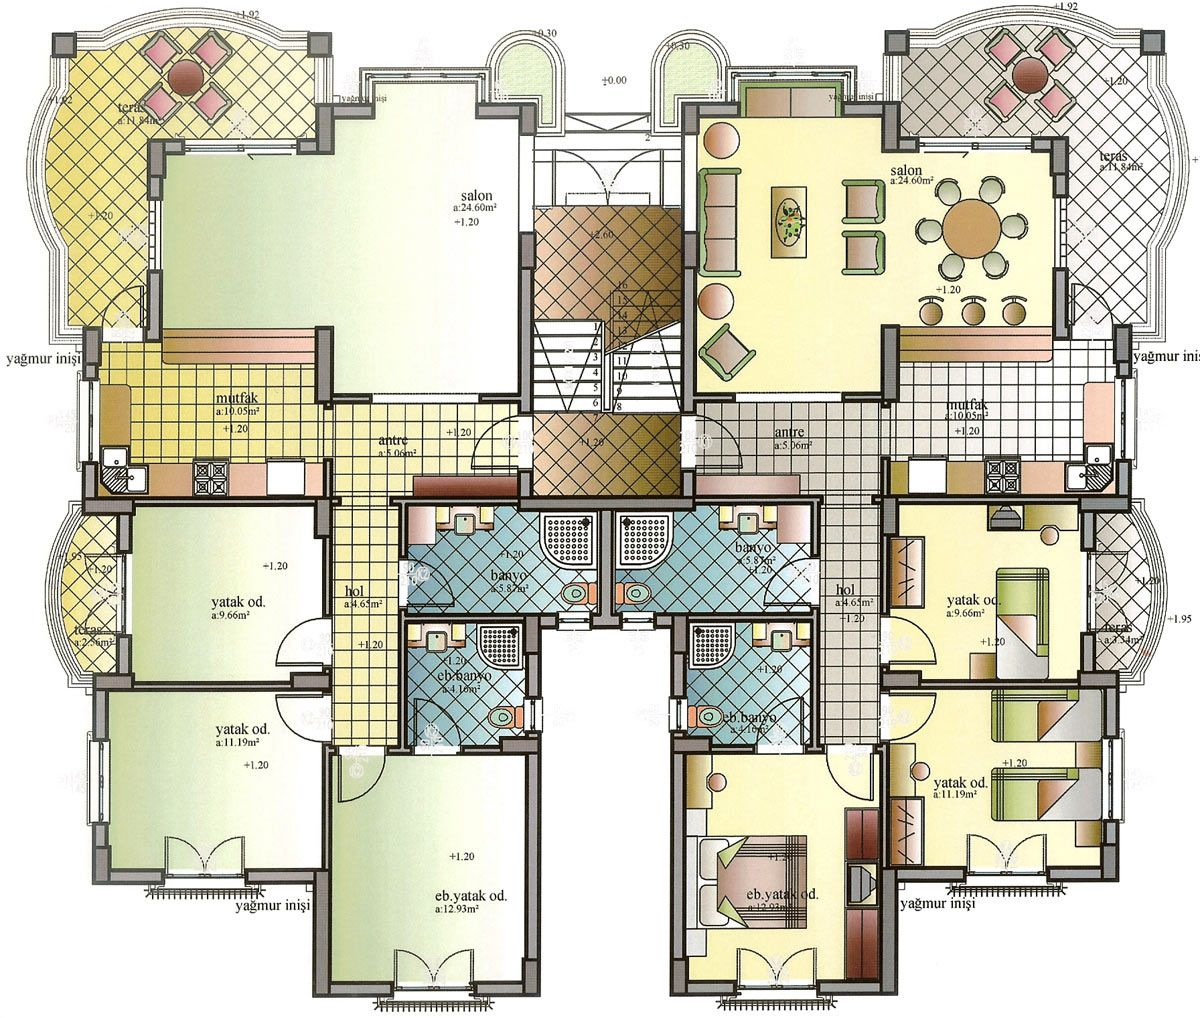 modern apartment building plans | Mimari | Pinterest | Building ...